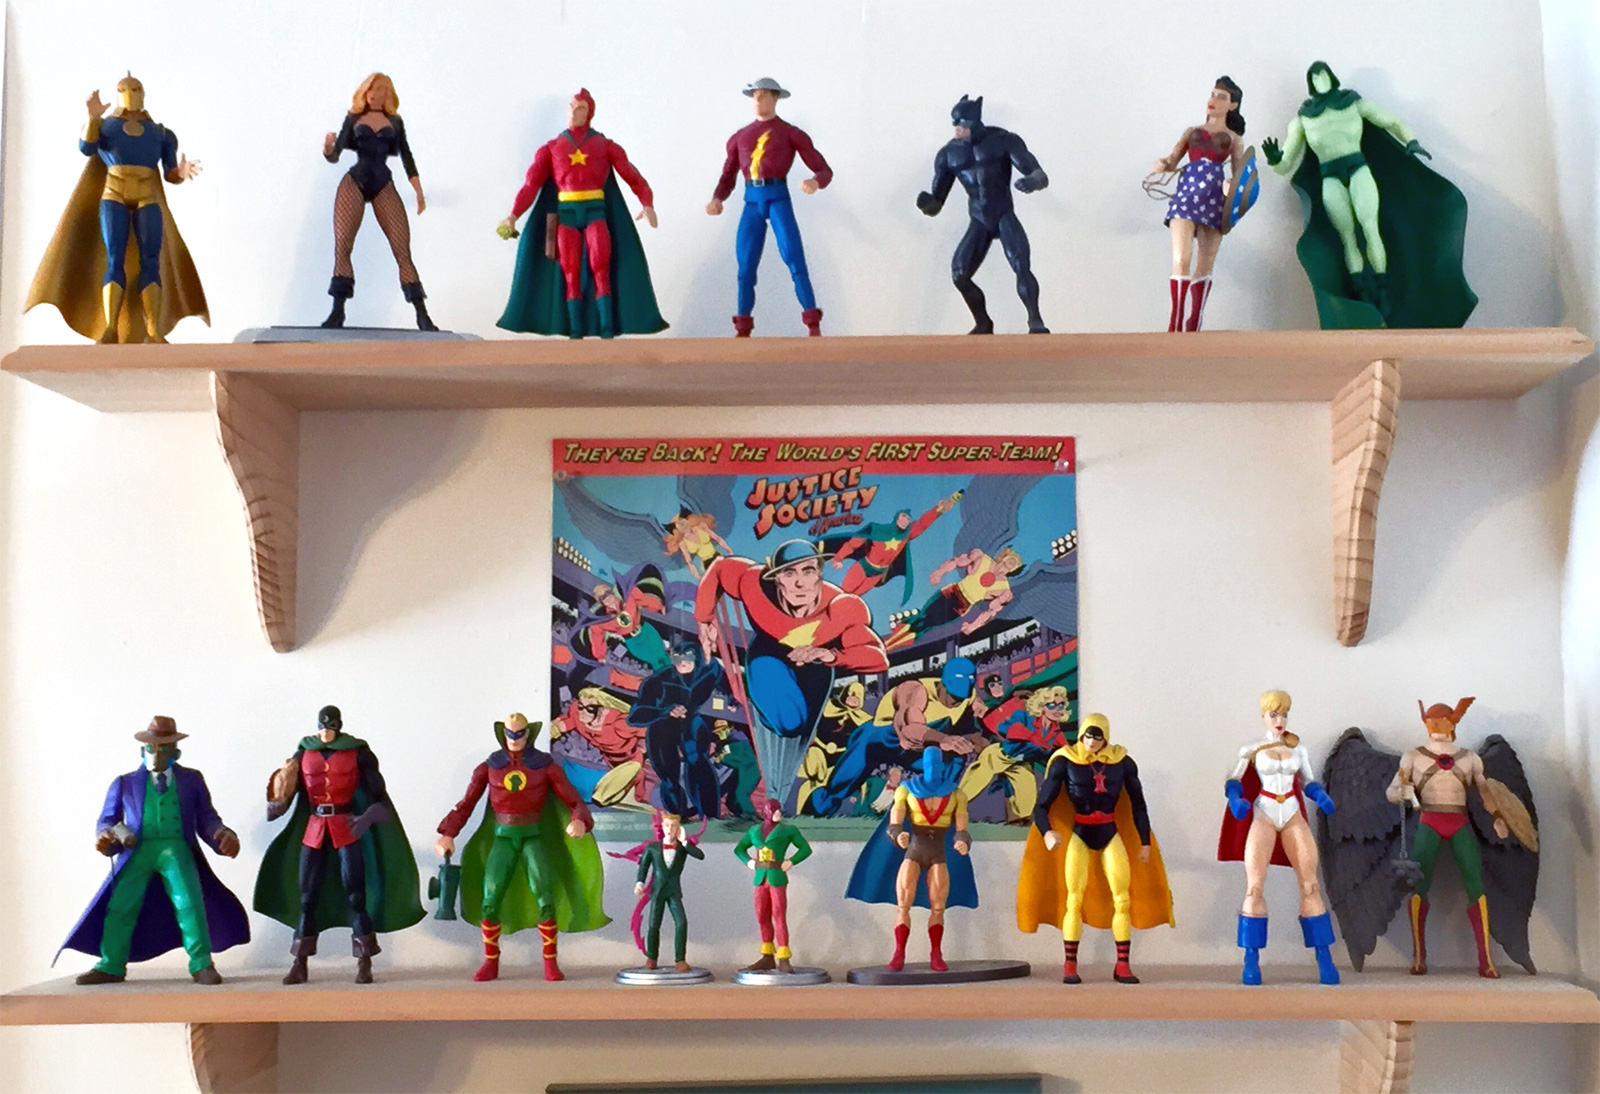 Shag's JSA action figure shelf!